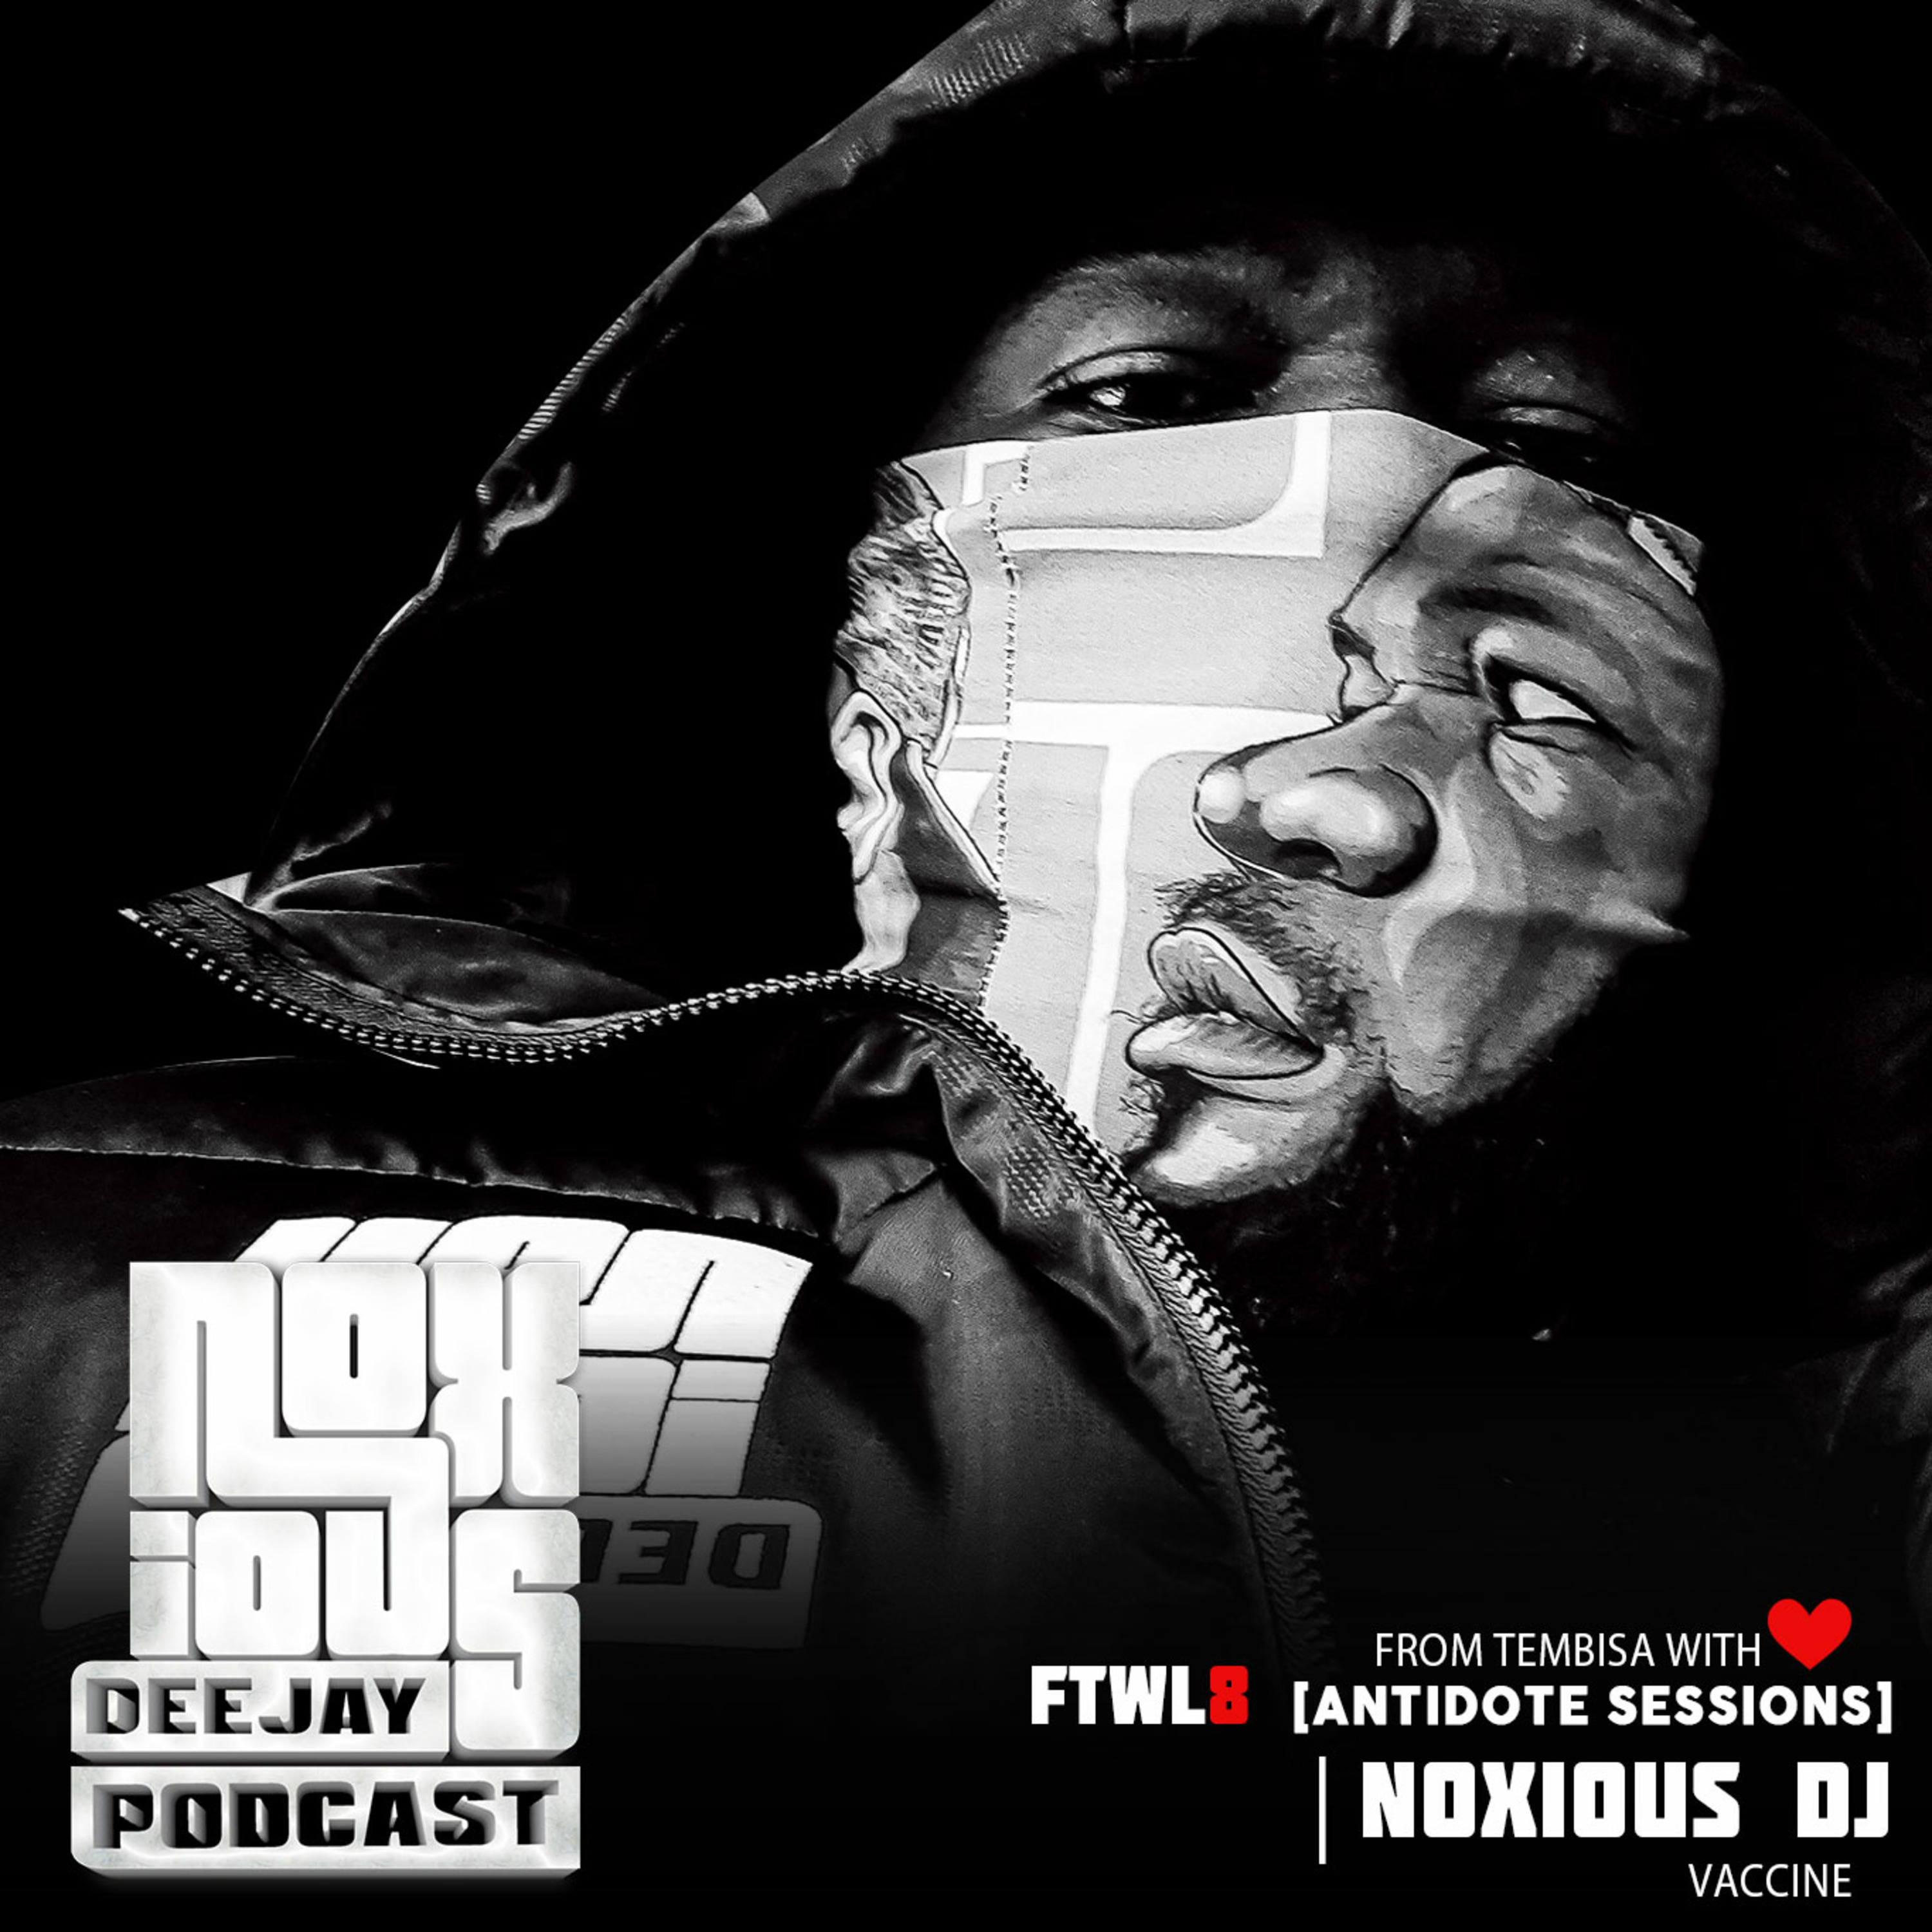 FTWL8 [Antidote Sessions] Noxious DJ Vaccine